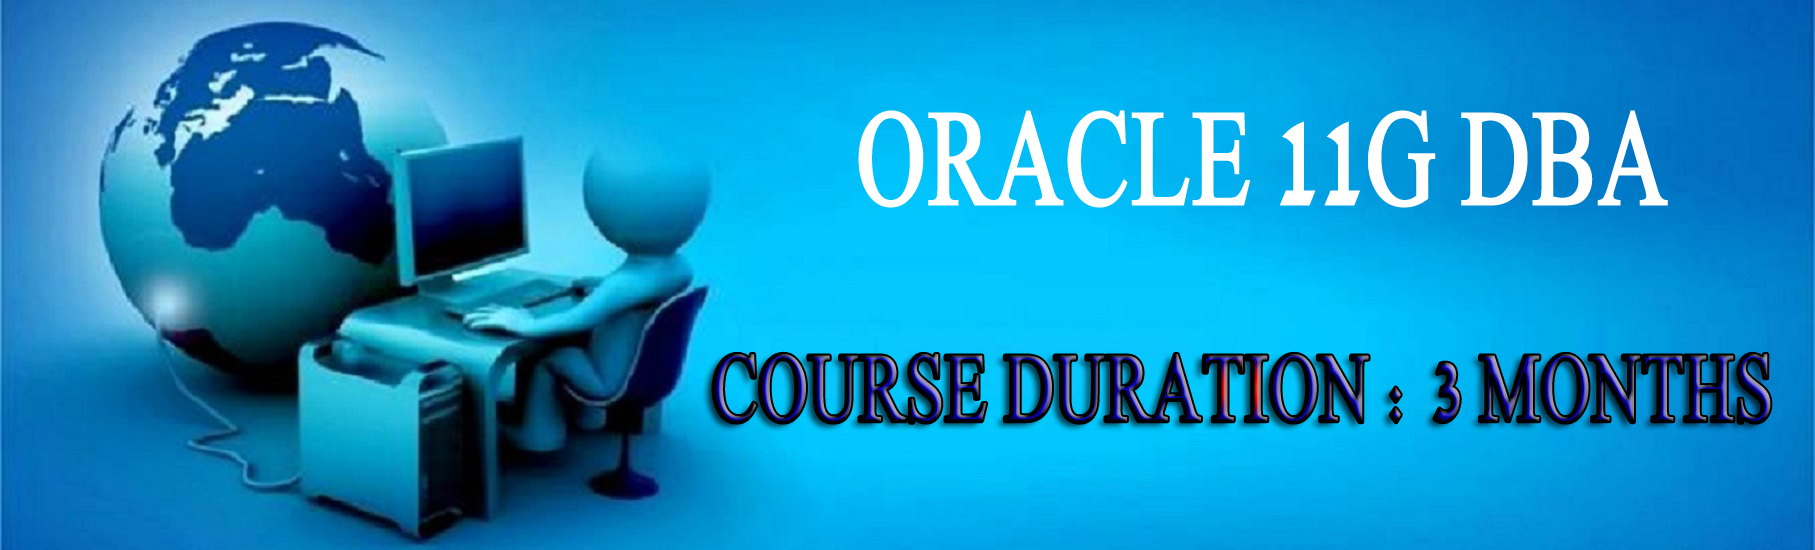 Oracle 11g Dba International Course Certification Training